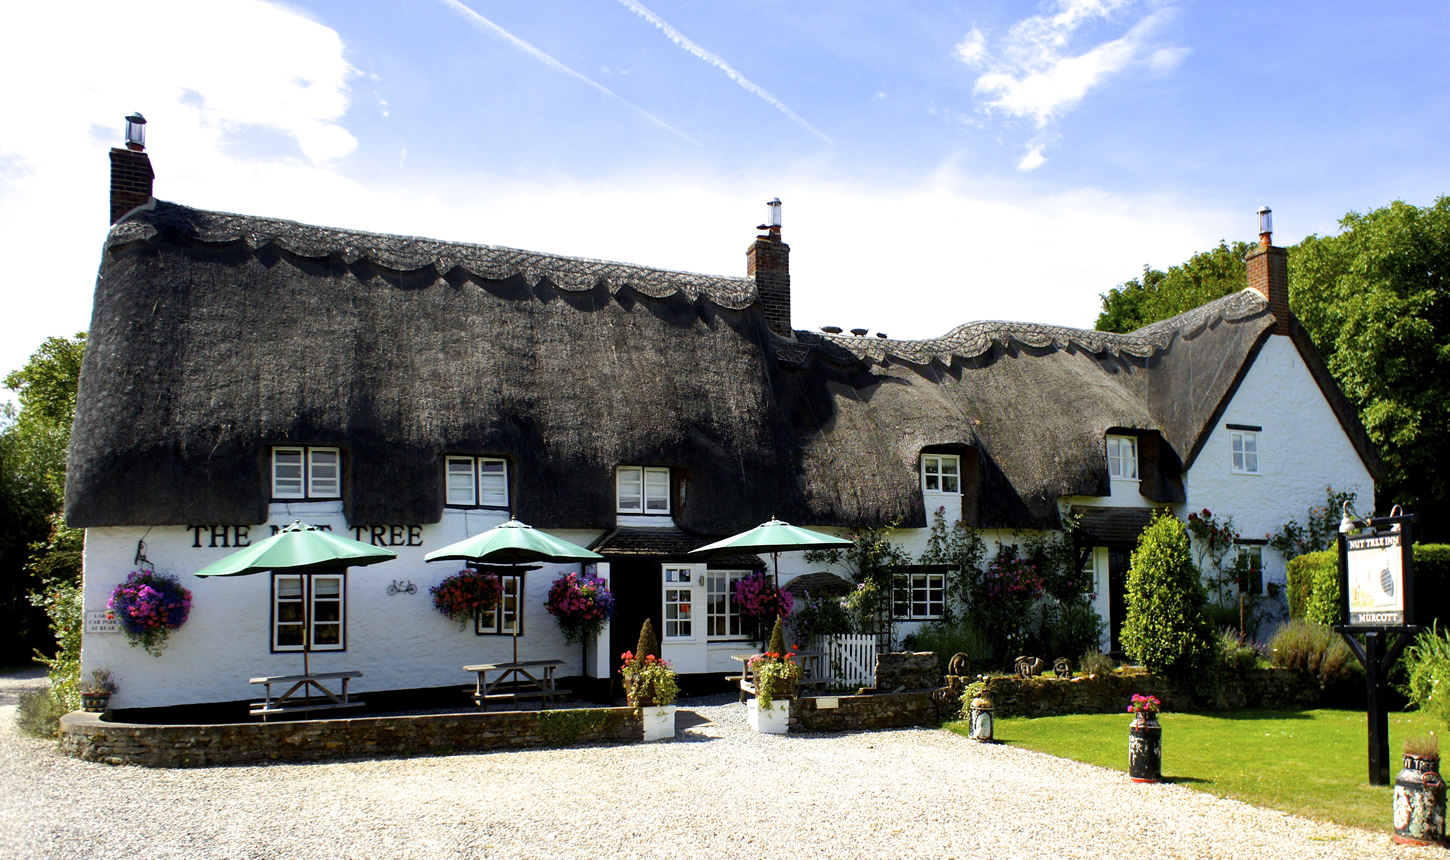 nut Tree Inn Thatch